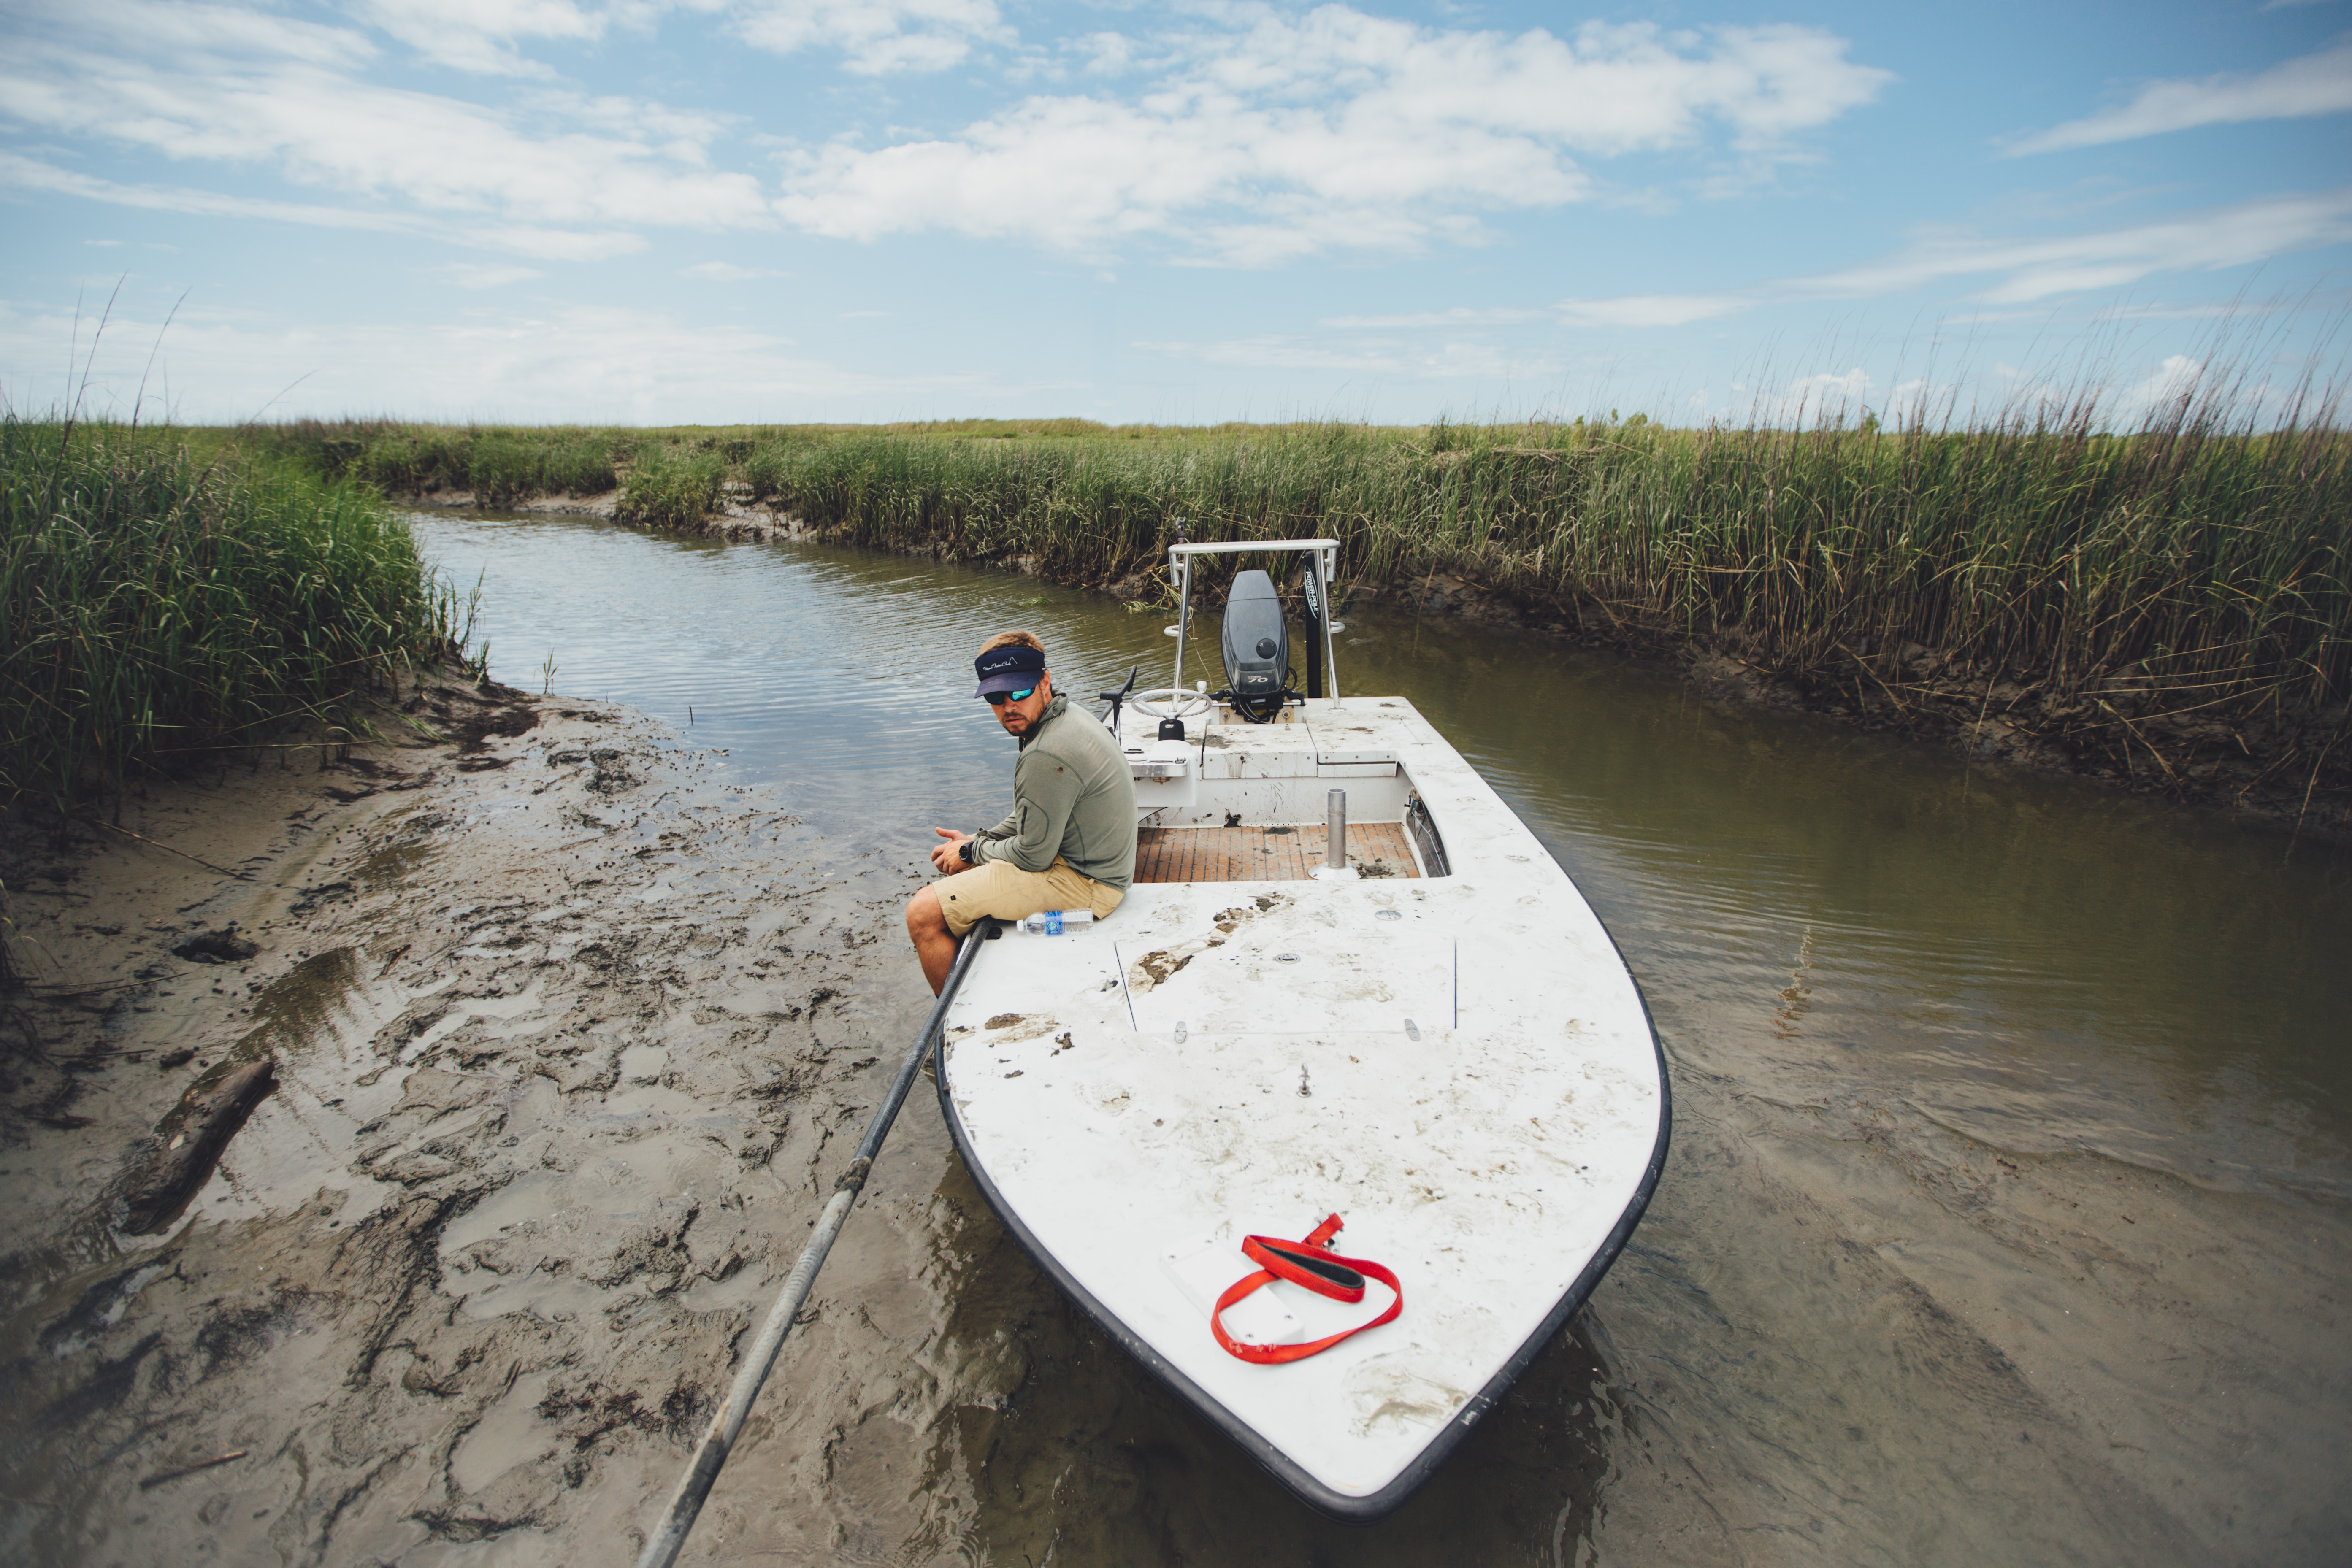 """FINALIST Professional category: Lowcountry Lowtide by  Jeremy Clark; """"Caught in a small lowcountry creek by the low tide. We may have missed a Friday staff meeting due to this snafu... Taken just north of Isle of Palms on May 29, 2015."""""""